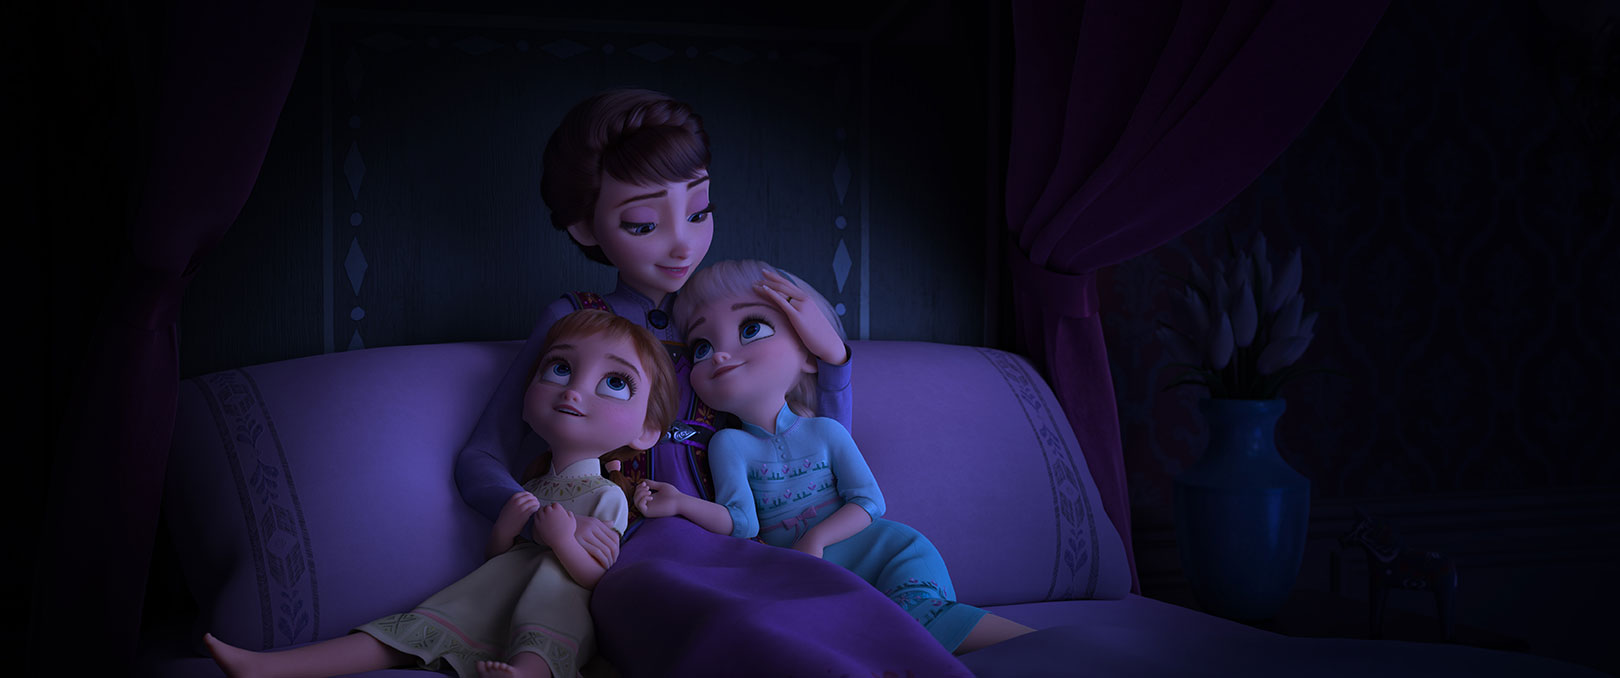 Frozen II - Young Anna and Elsa with Queen Iduna